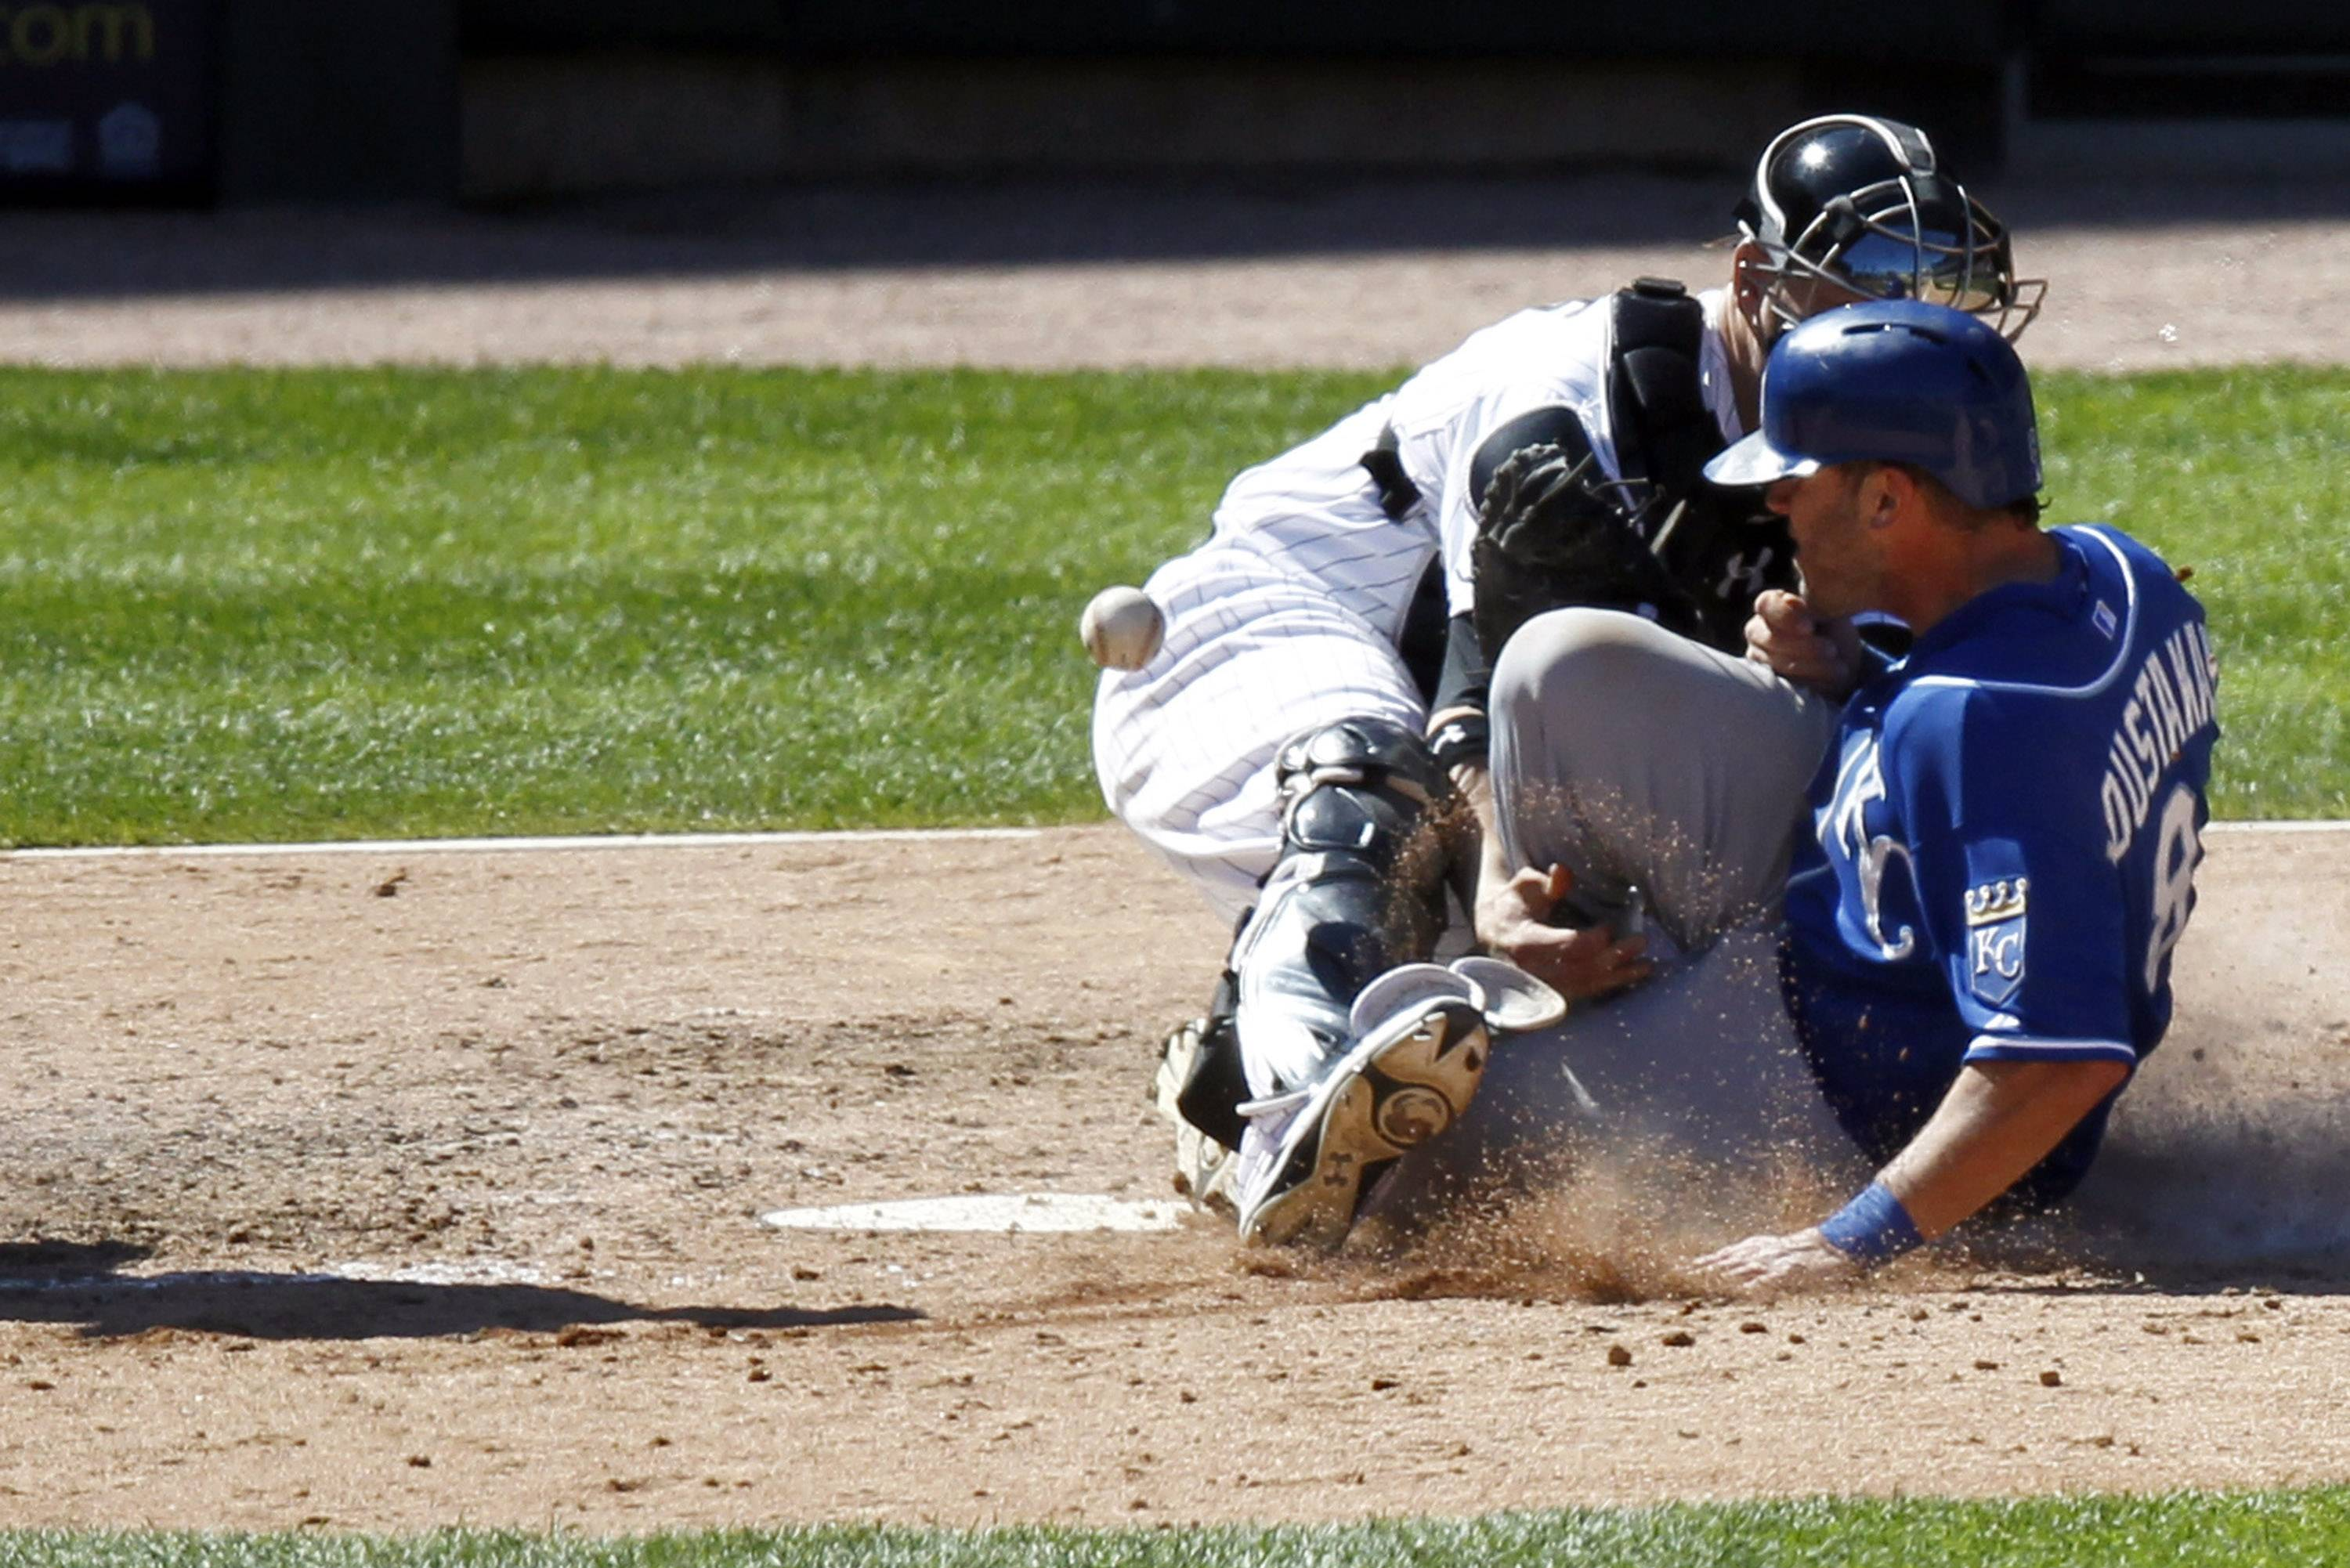 White Sox catcher Tyler Flowers, left, attempts to tag out Kansas City Royals' Mike Moustakas at the plate during the ninth inning of a baseball game on Wednesday, July 23, 2014, in Chicago.